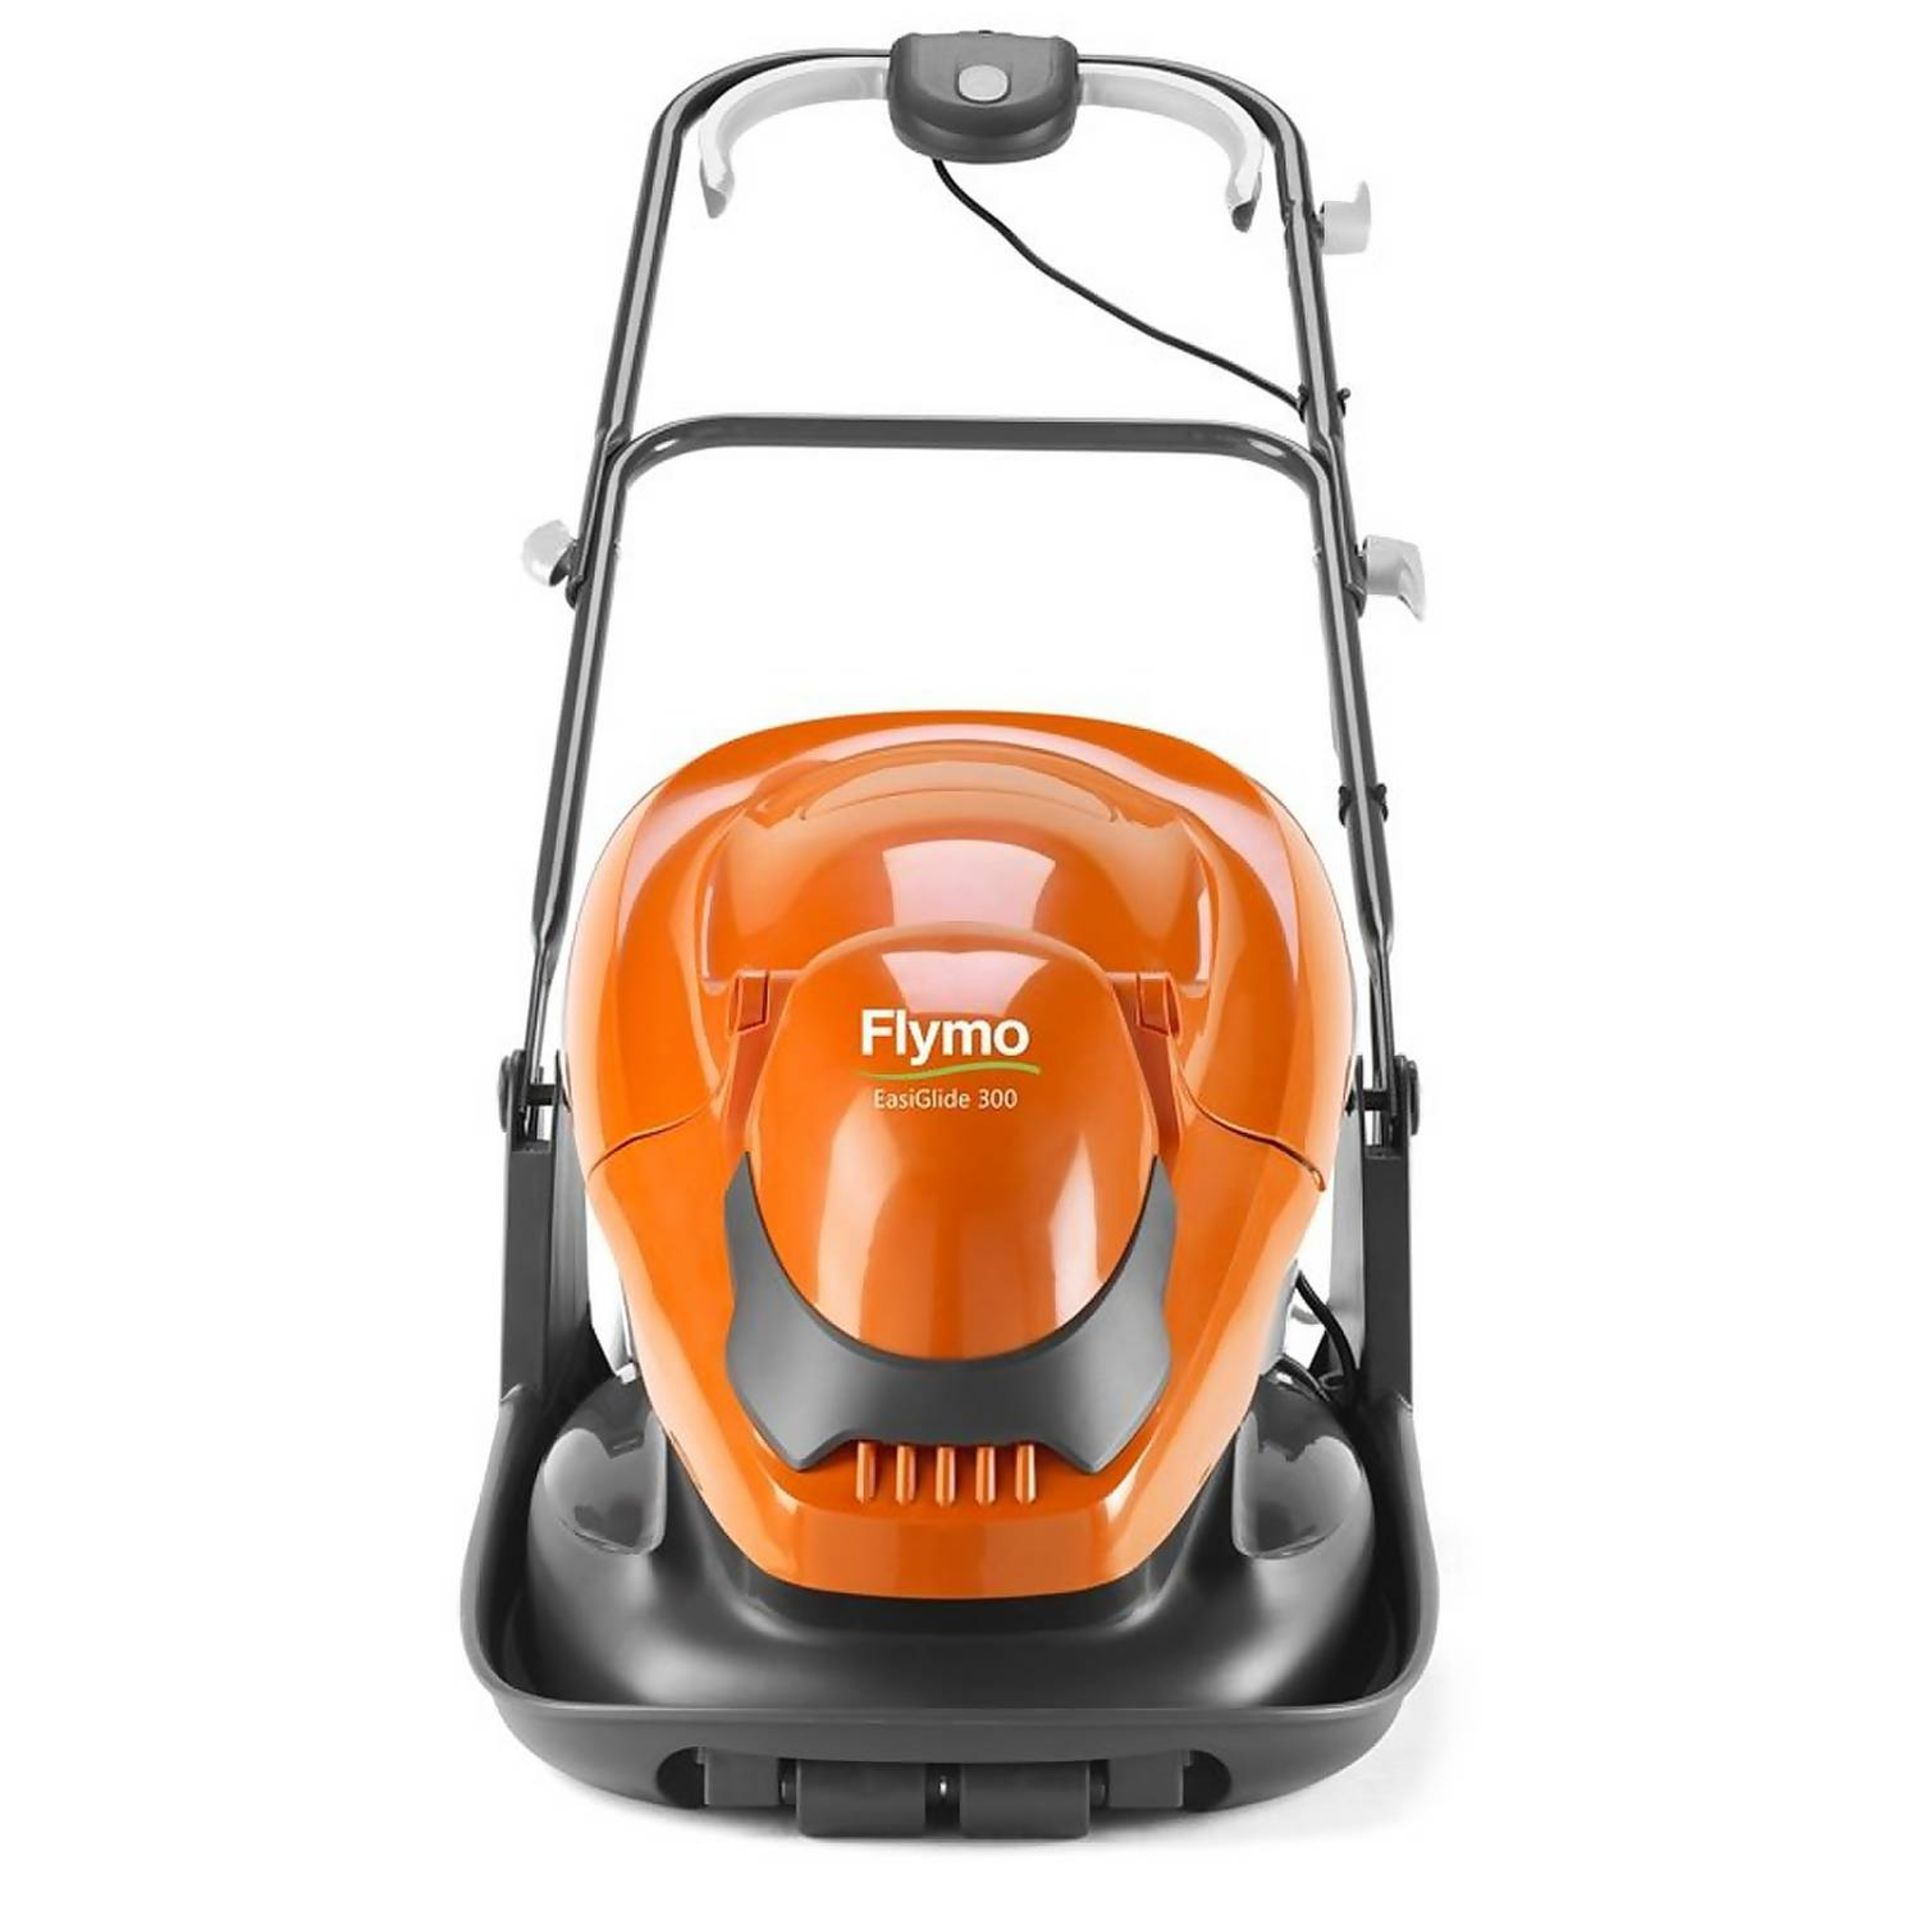 (P6) 1x Flymo EasiGlide 300 Hover Collect Lawnmower RRP £99. New Item – Damage To Box.